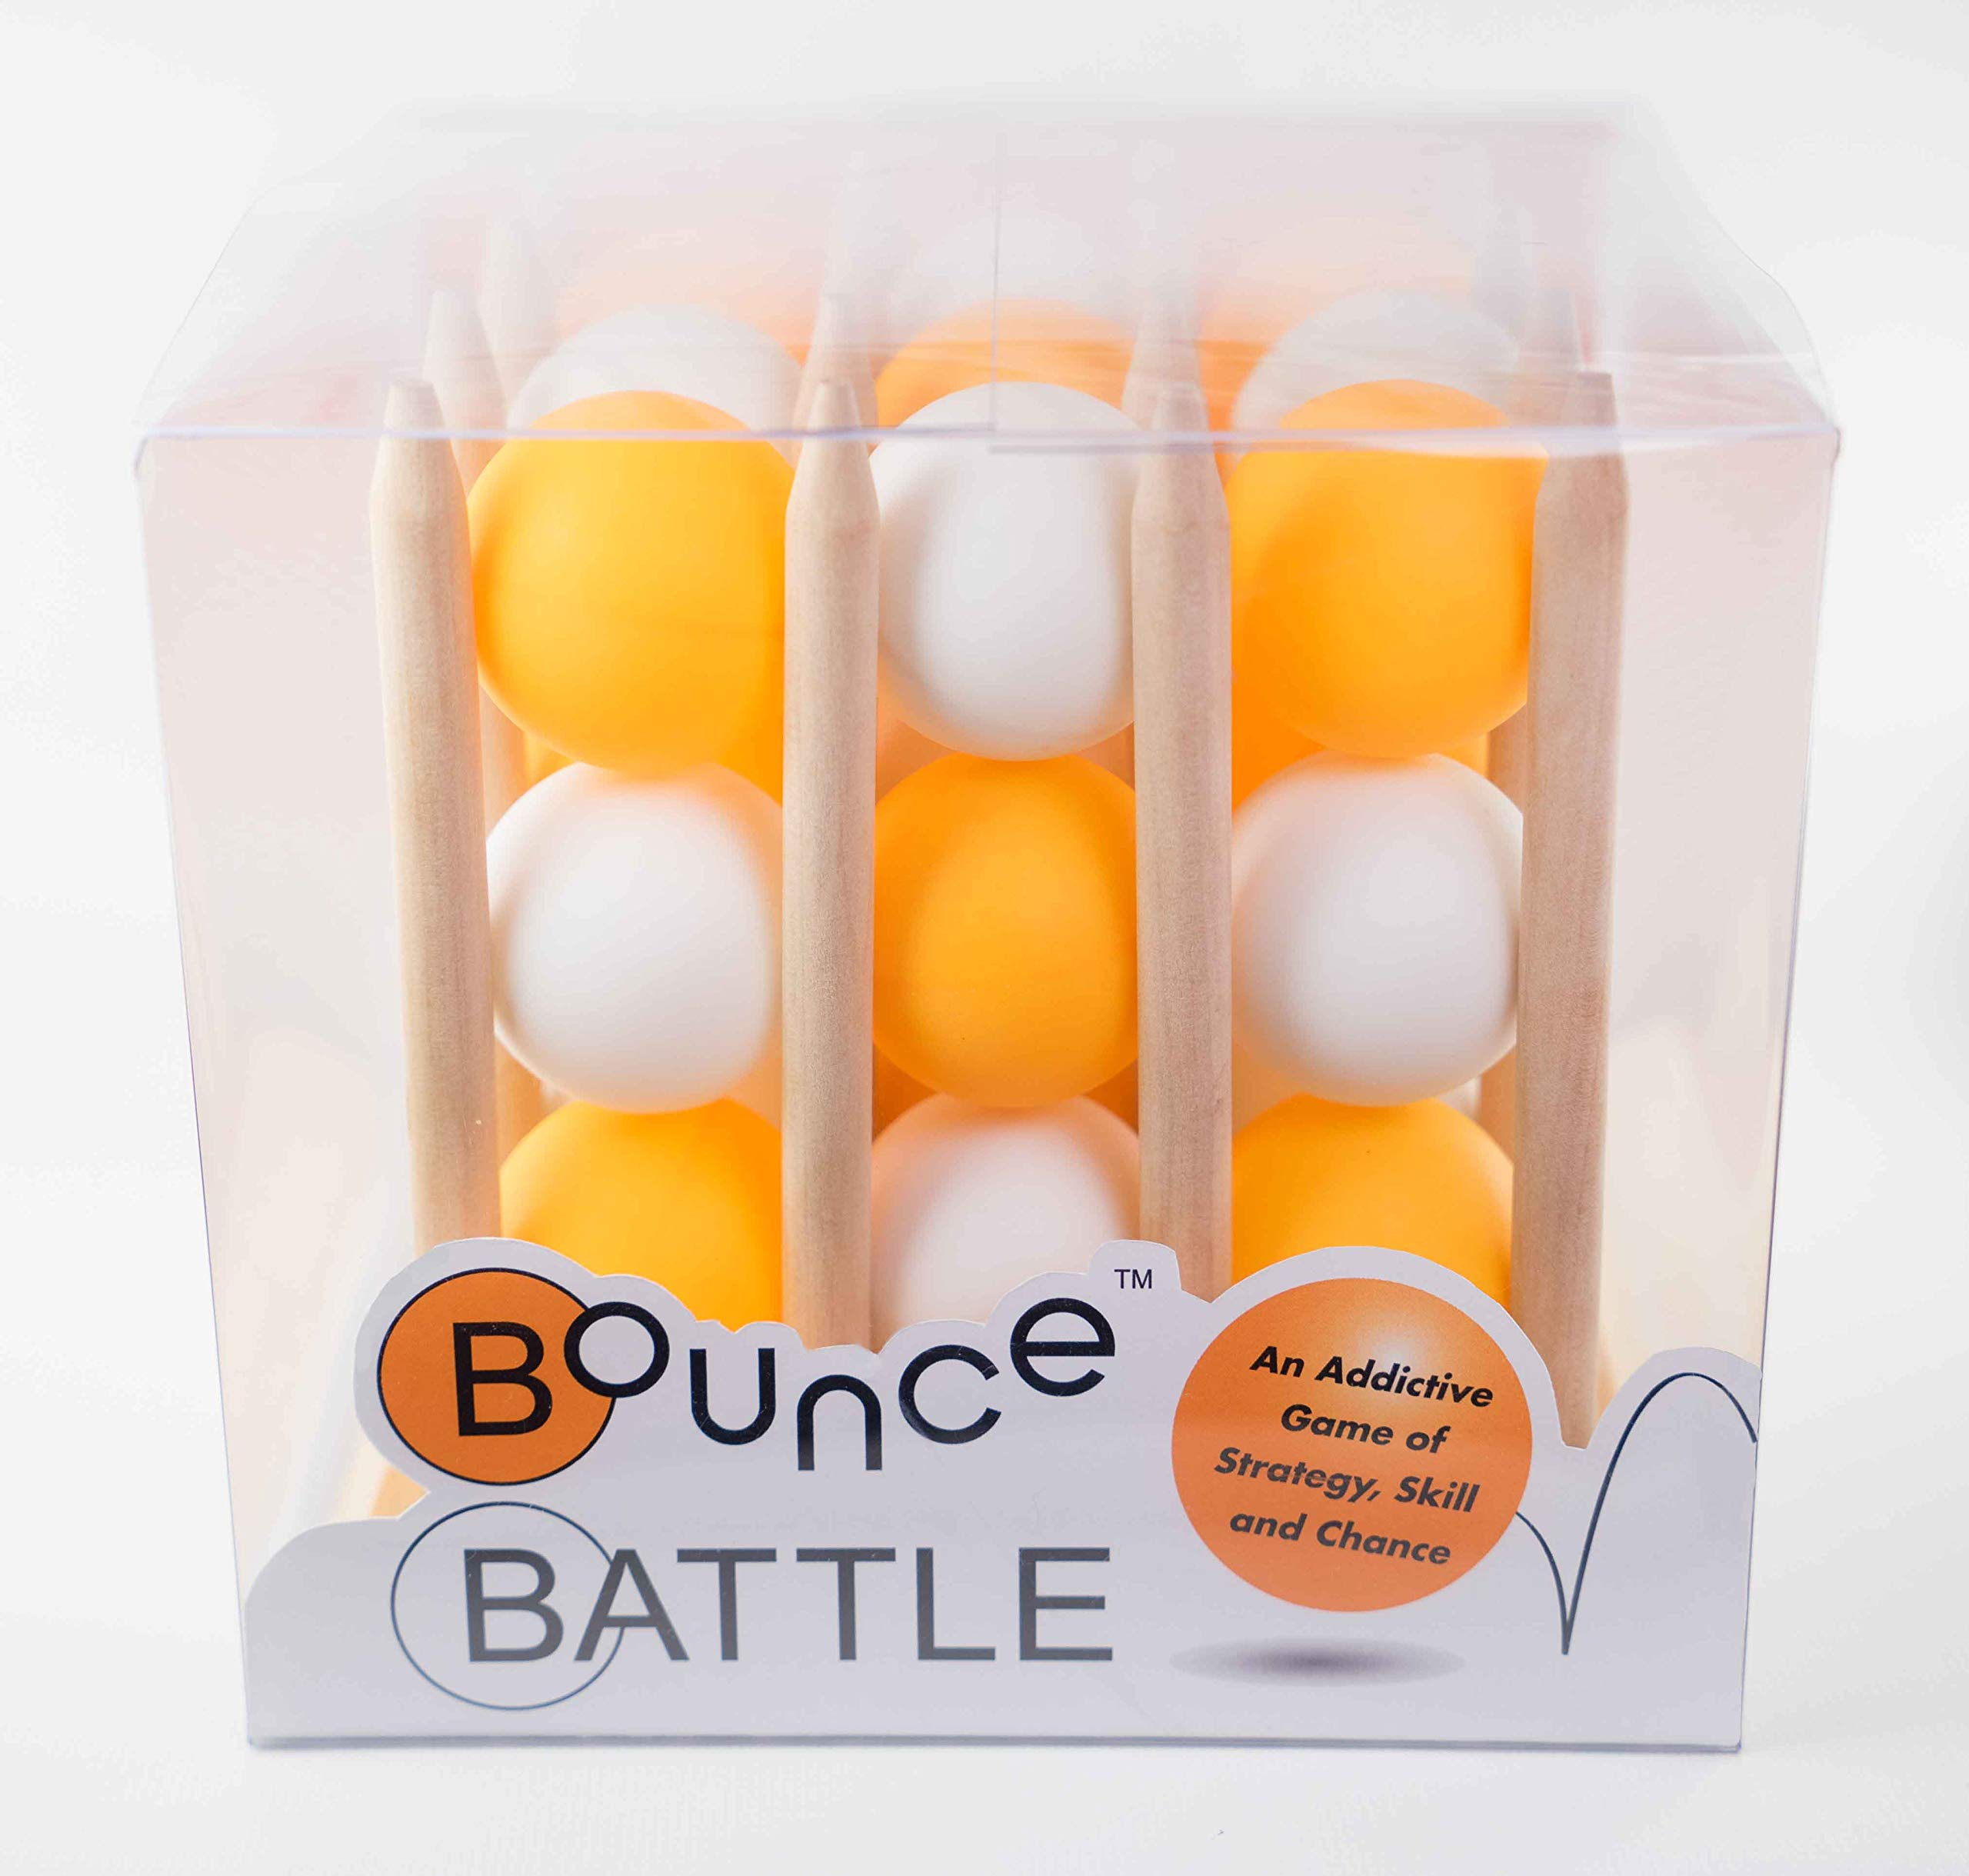 Bounce Battle Wood Edition Game Set - an Addictive Game of Strategy, Skill & Chance by Bounce Battle